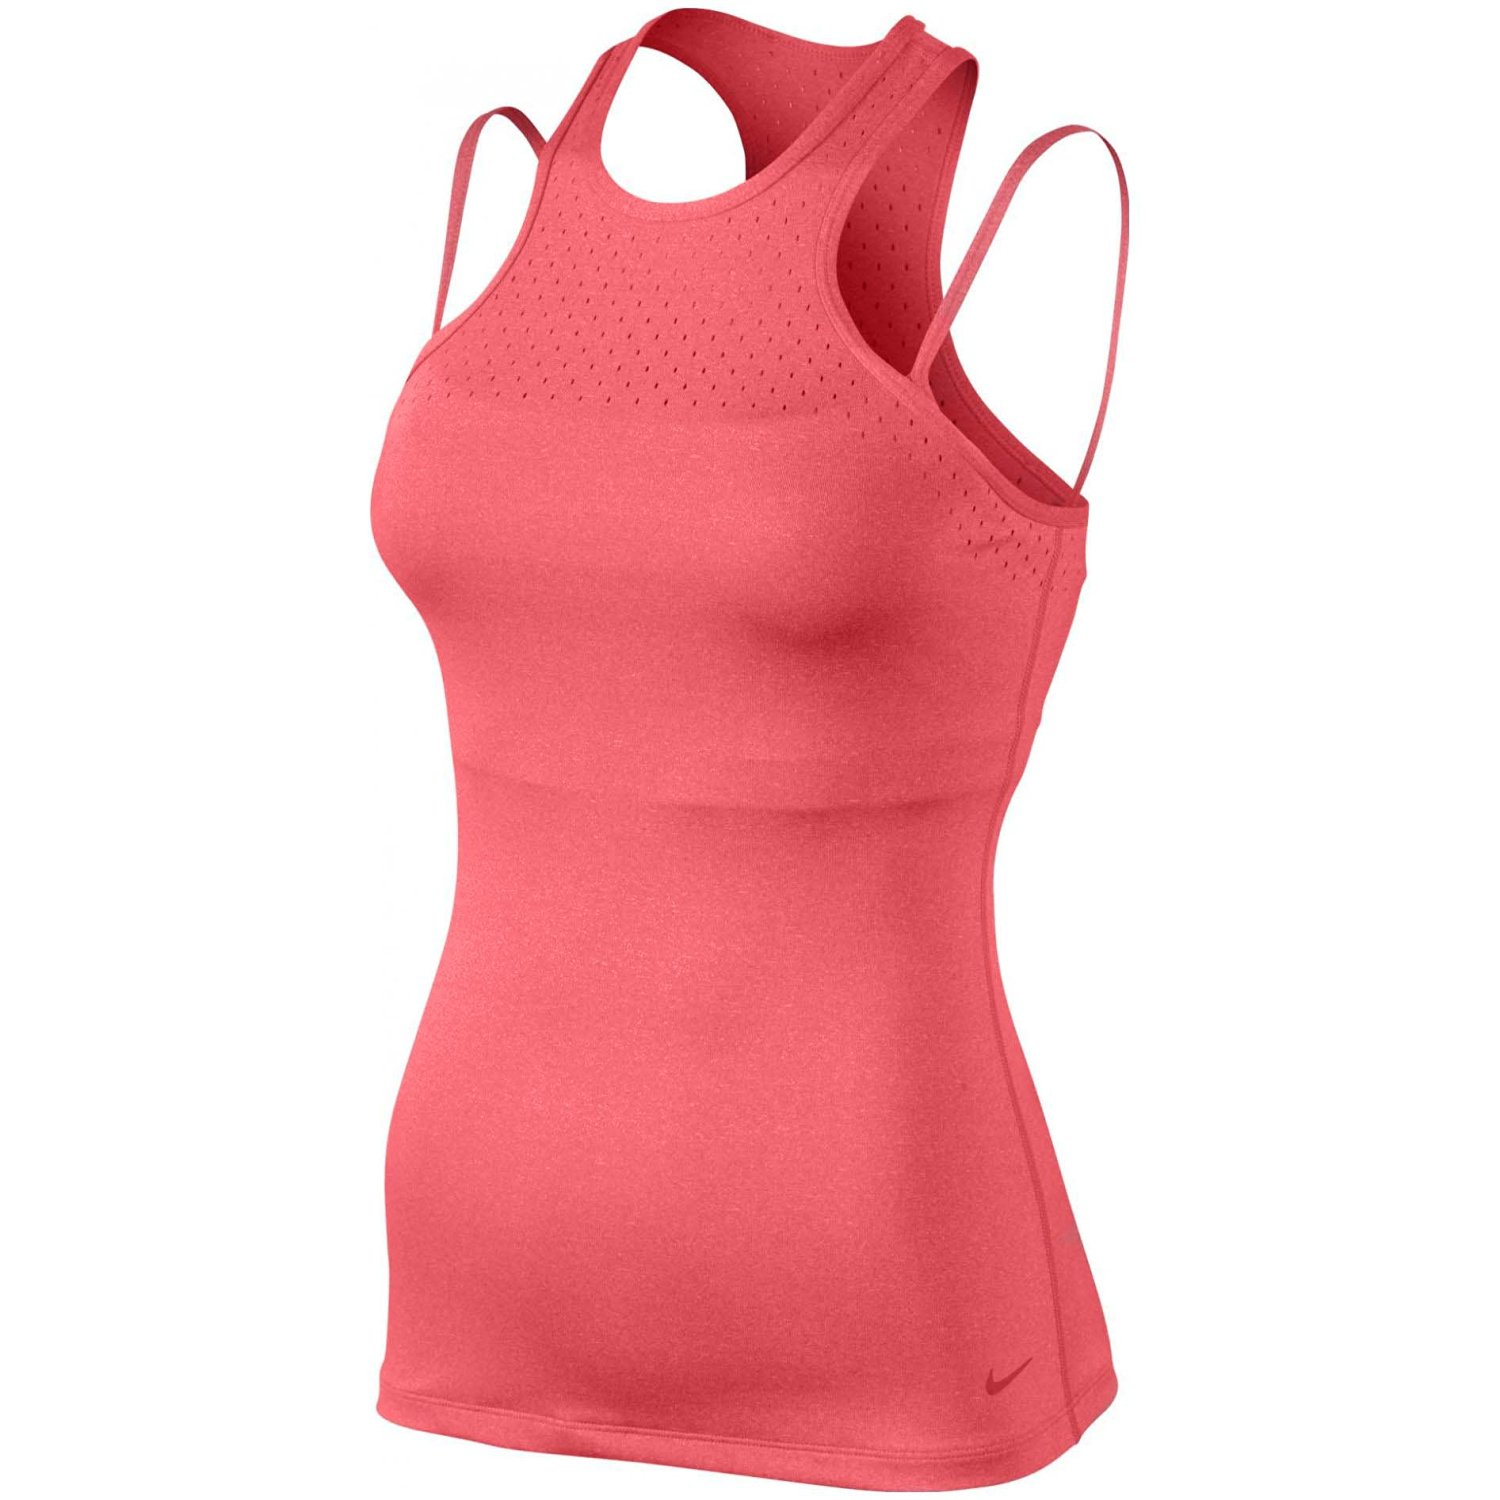 ec8b6eaf9aa2d Get Quotations · Nike Women's Dri-Fit Racerback Tank Top With Support Bra  medium